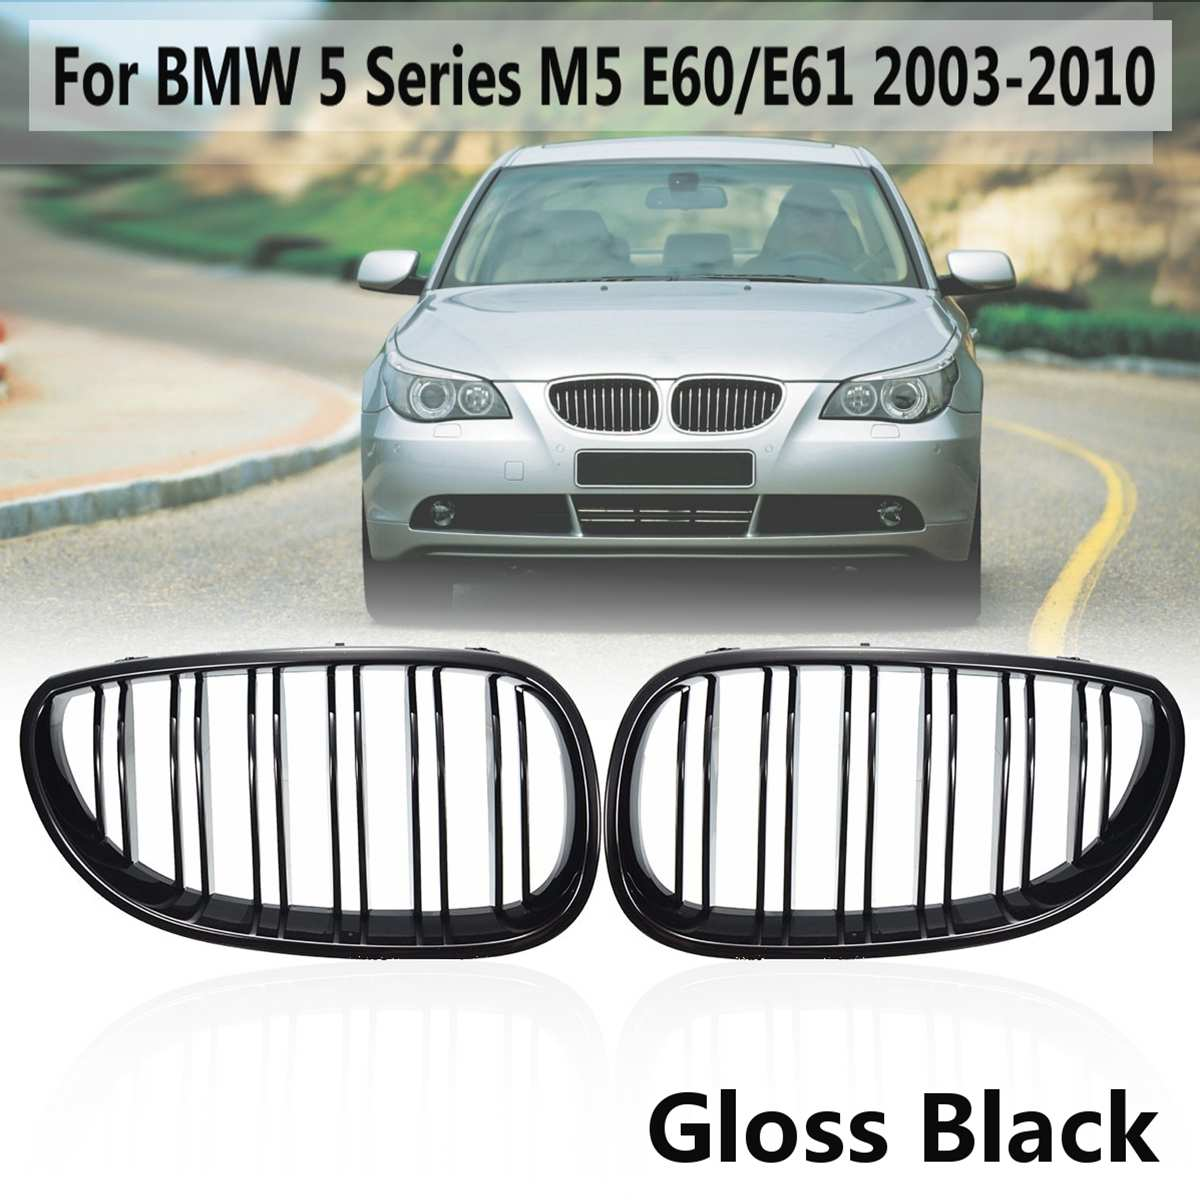 Car Front Sport Grill Kidney Grilles Grill For <font><b>BMW</b></font> <font><b>5</b></font> <font><b>Series</b></font> M5 <font><b>E60</b></font>/E61 2003 2004 2005 2006 2007 2008 2009 2010 Gloss Black image